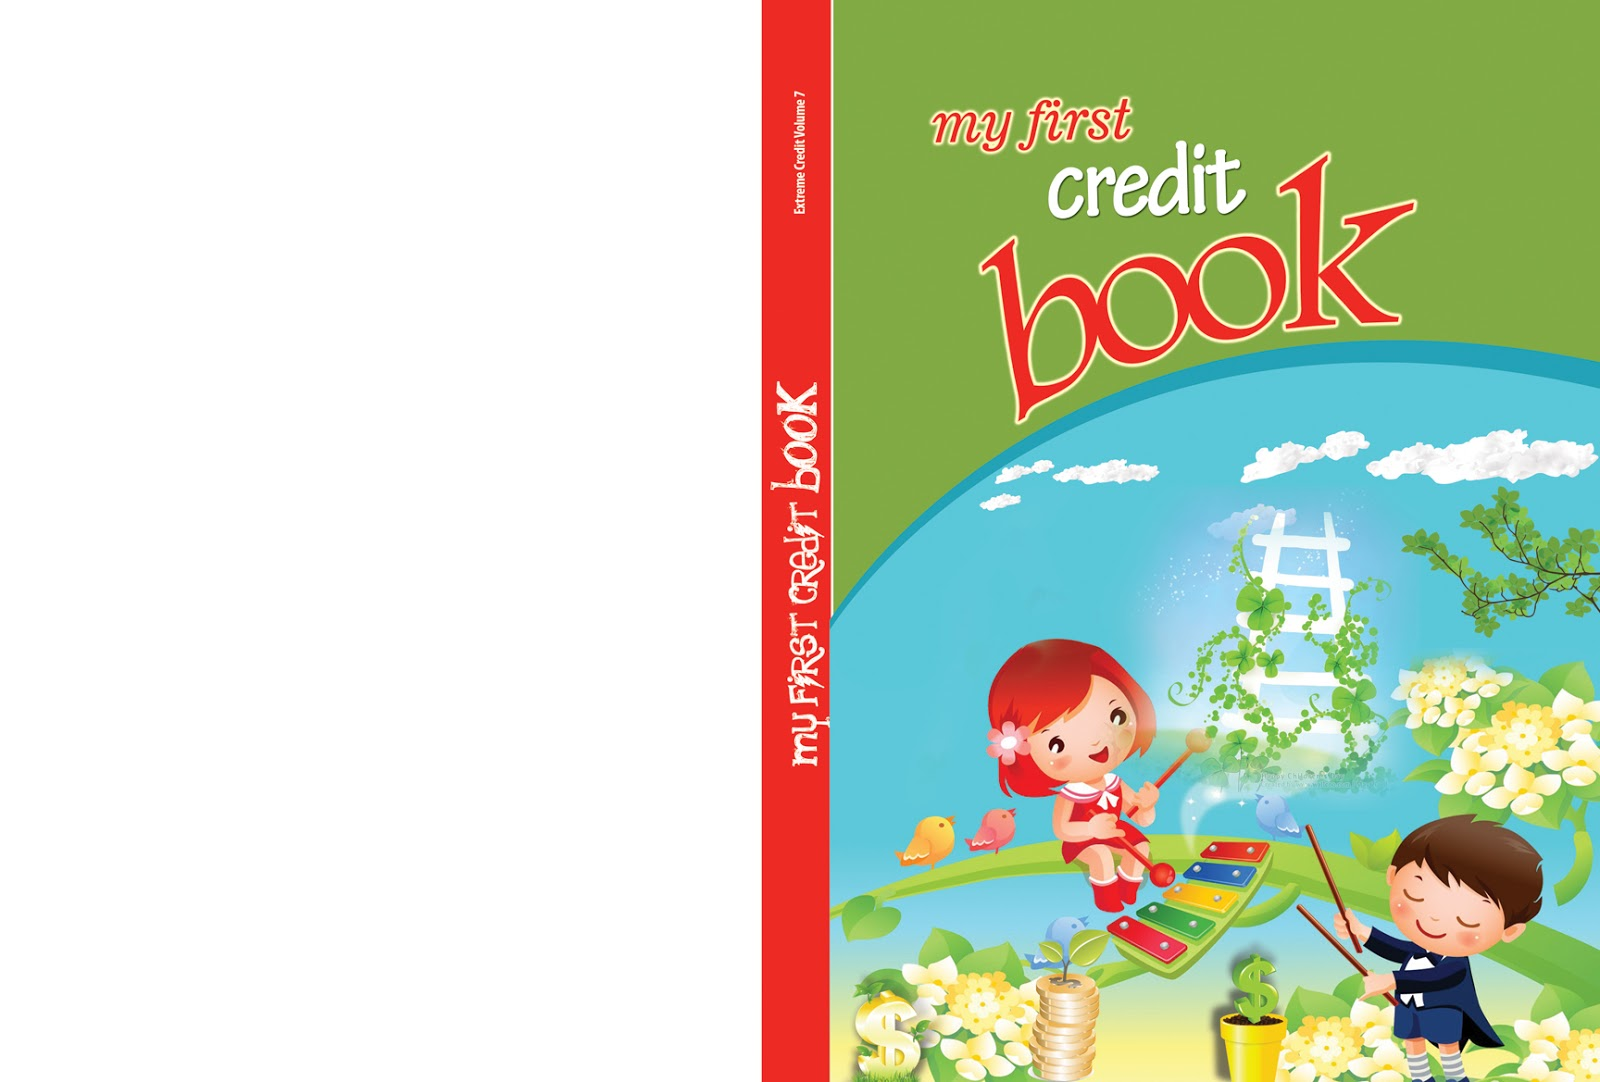 Cover Page For Children S Book : Creative design book cover designs e covers